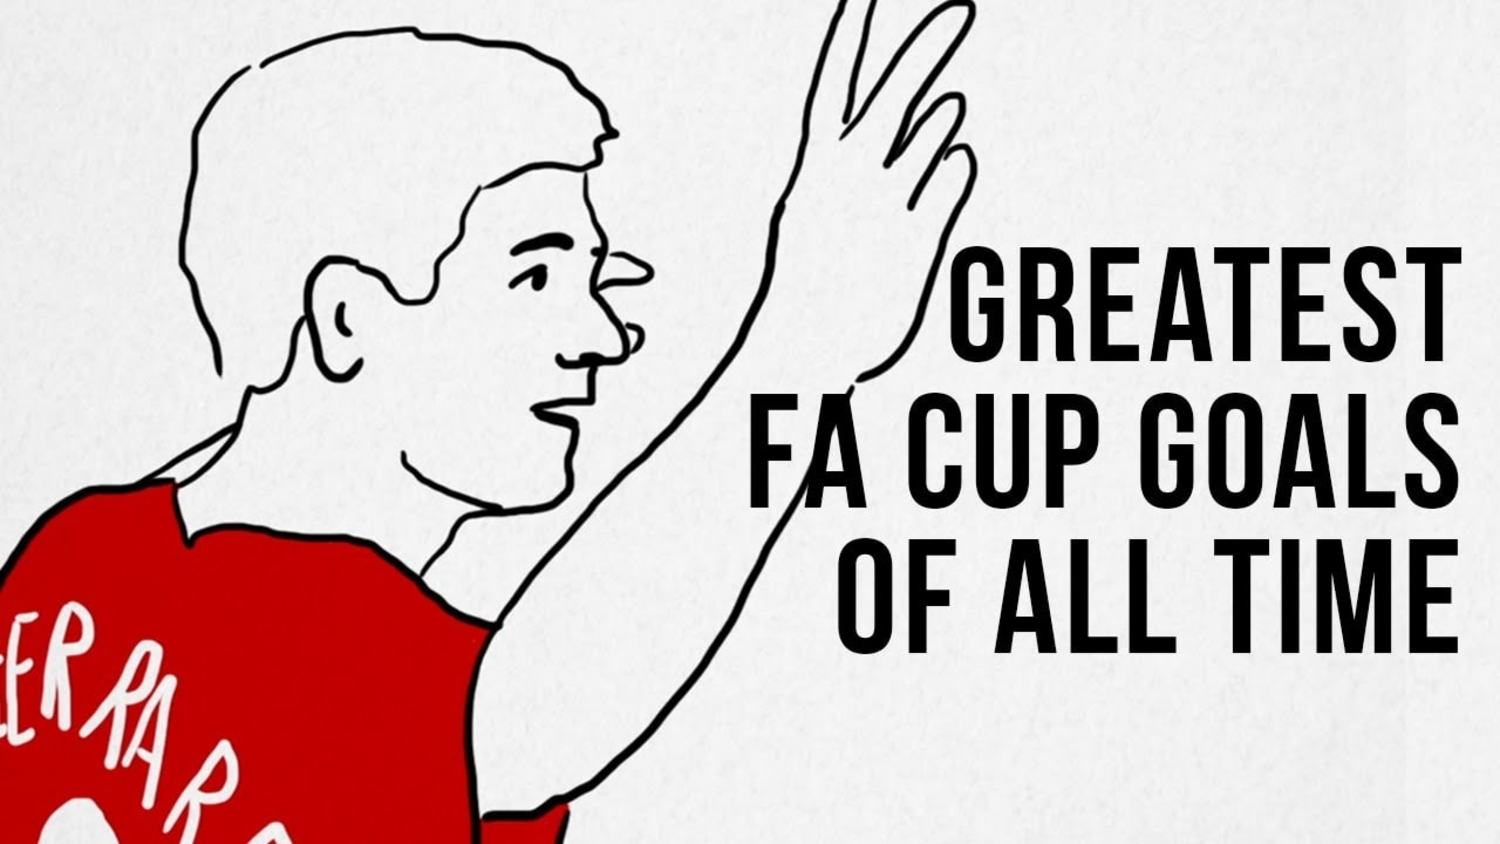 The Greatest FA Cup Heroes ft. Gazza, Ramsey & more